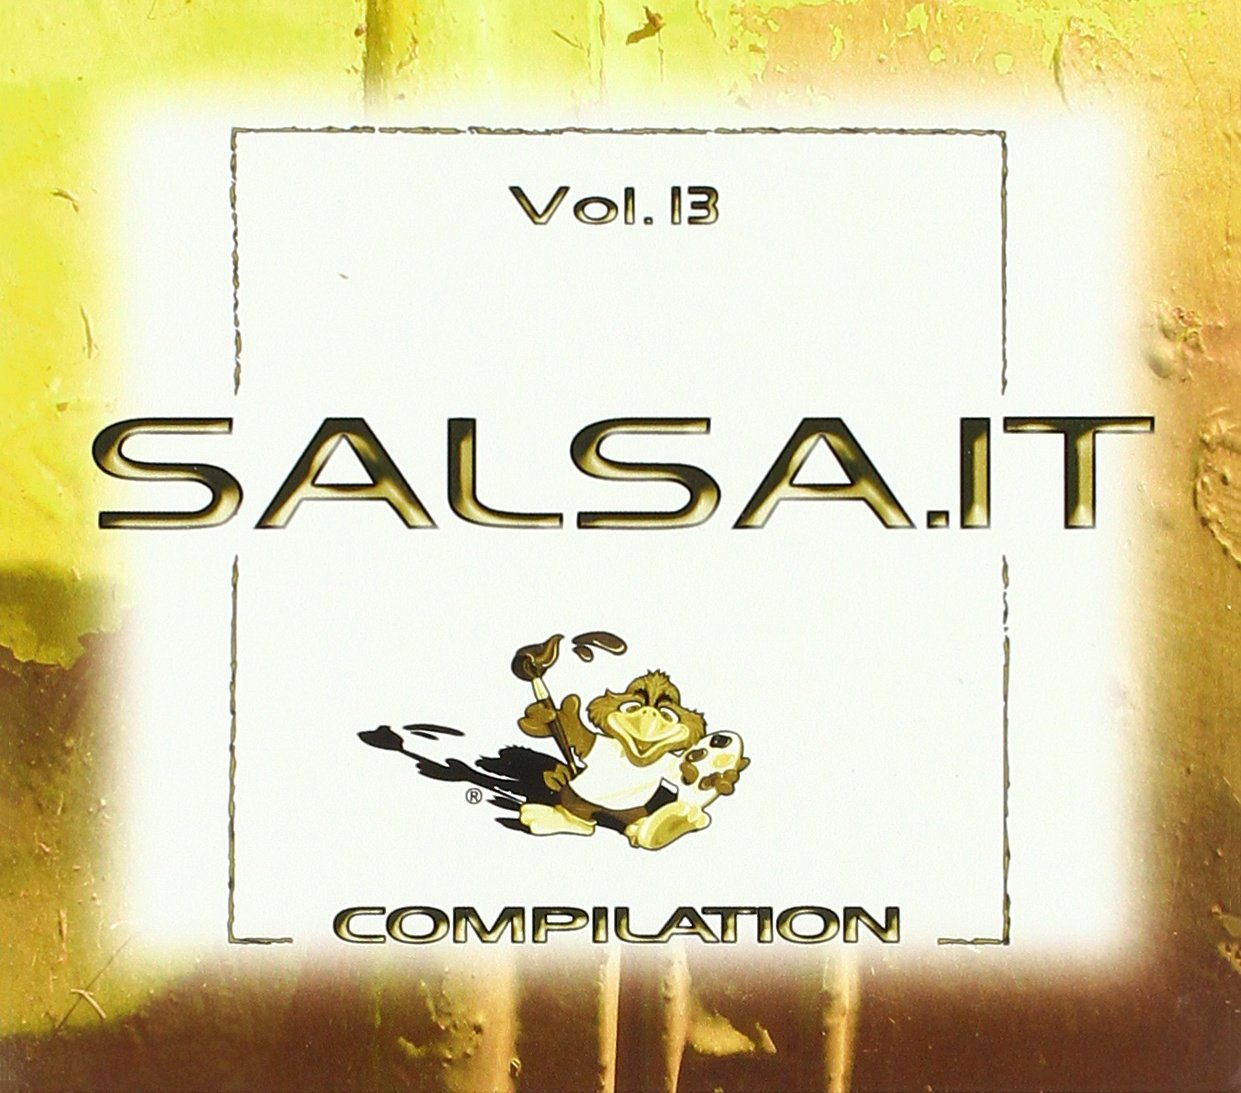 PARA TITO - SALSA.IT COMPILATION VOL.13